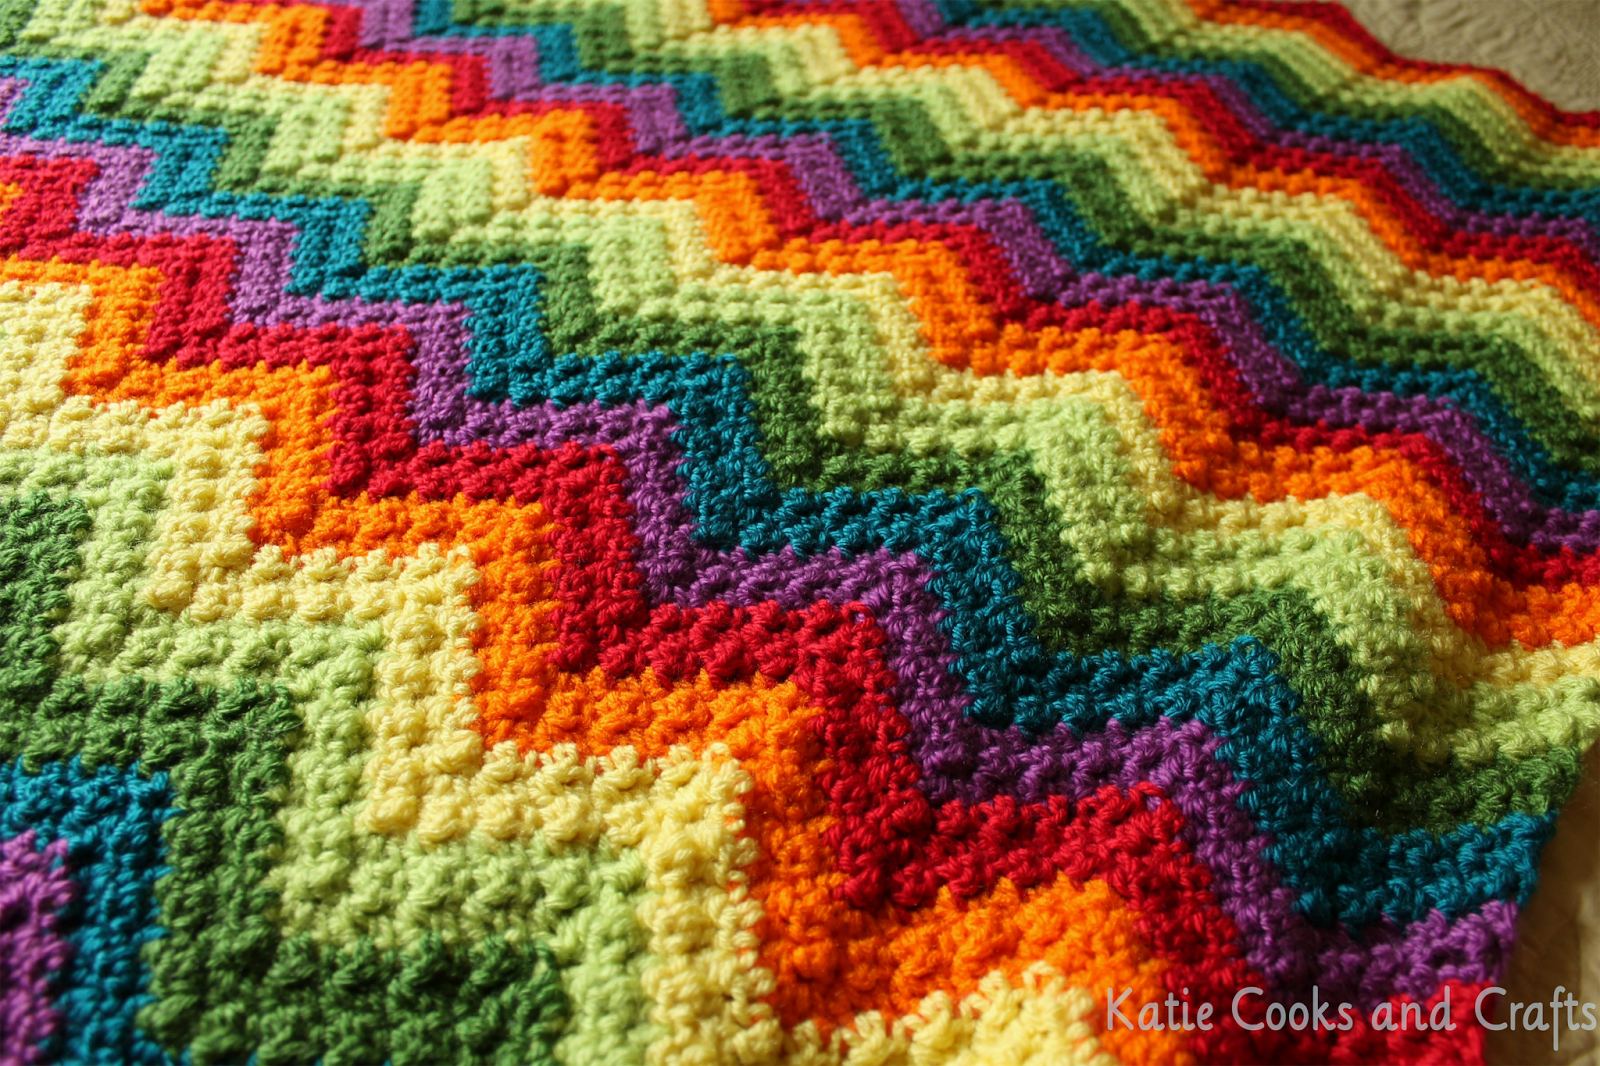 Rumpled Ripple Rainbow Crochet Baby Afghan By Katie - Free Crochet ...